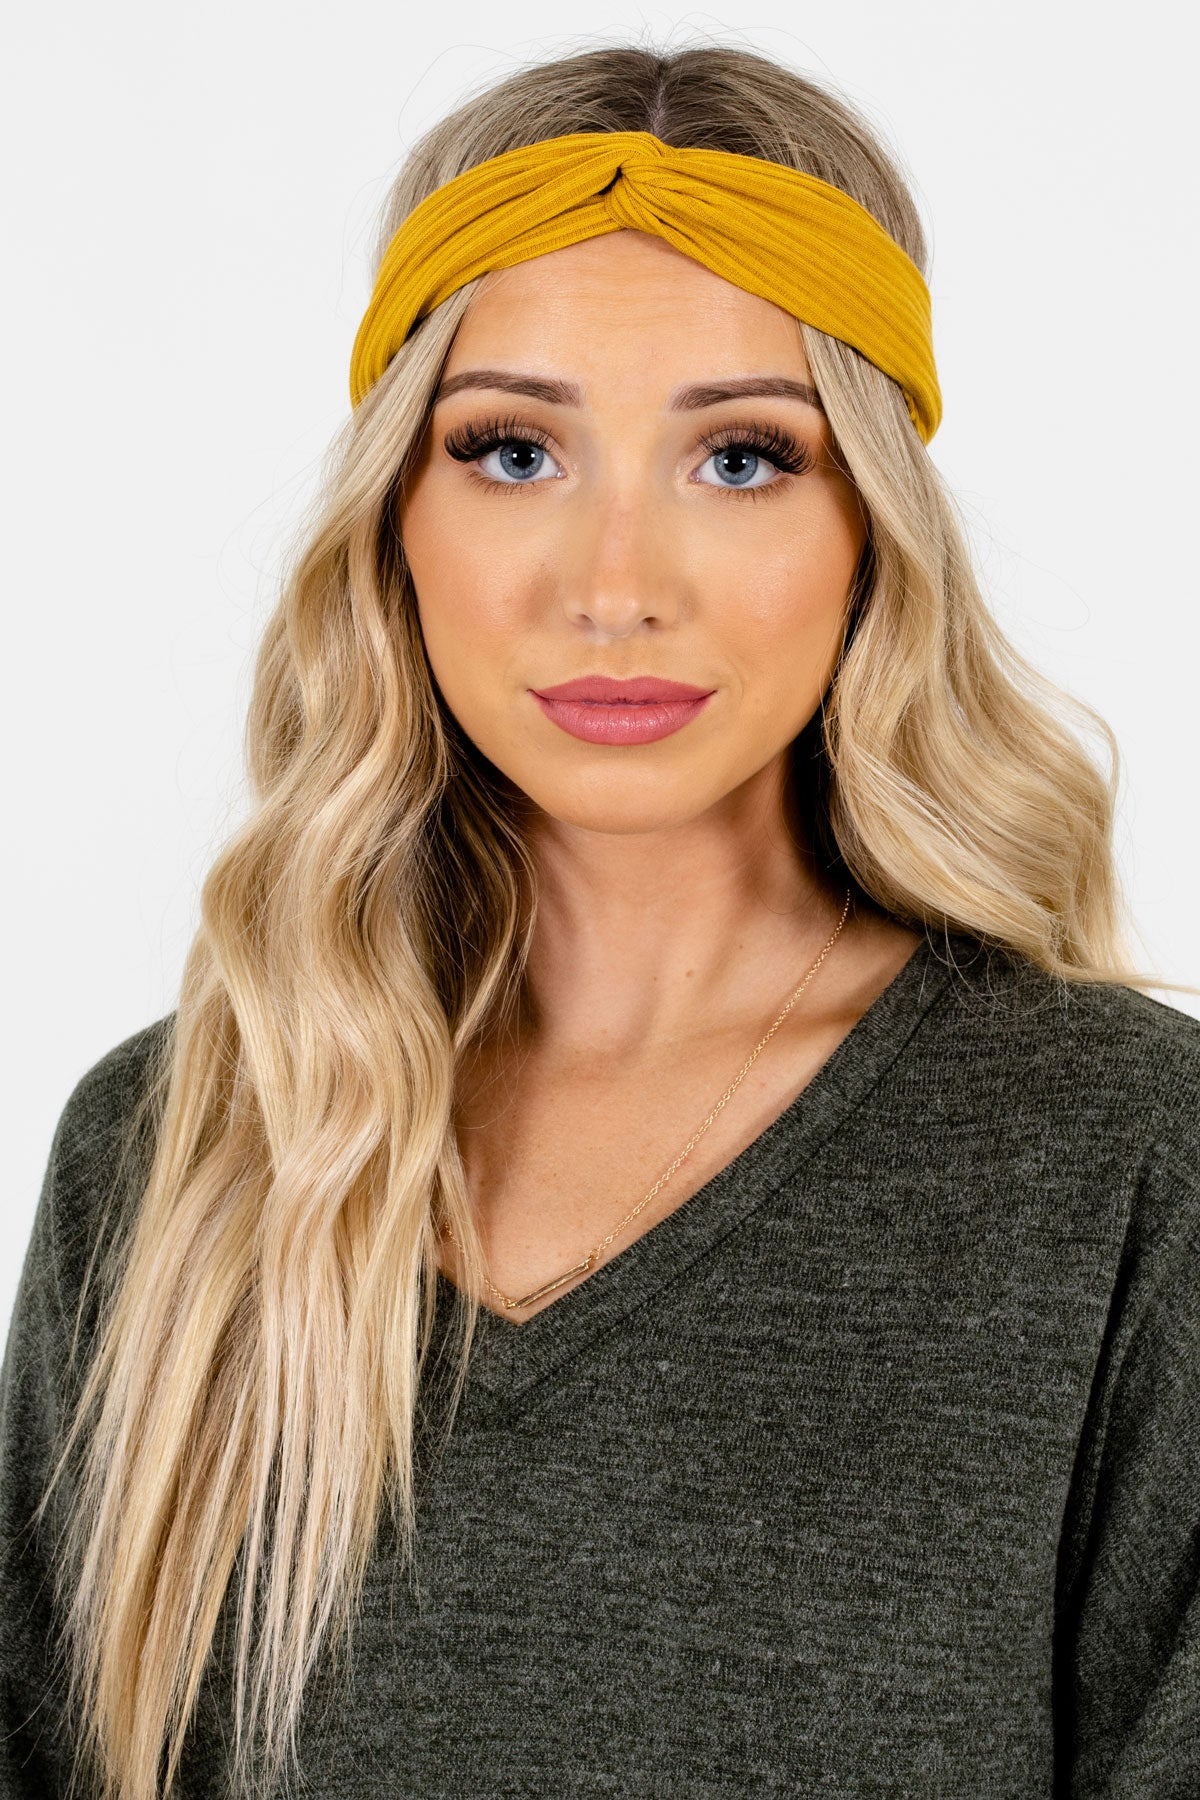 Mustard Yellow Ribbed Material Boutique Headbands for Women